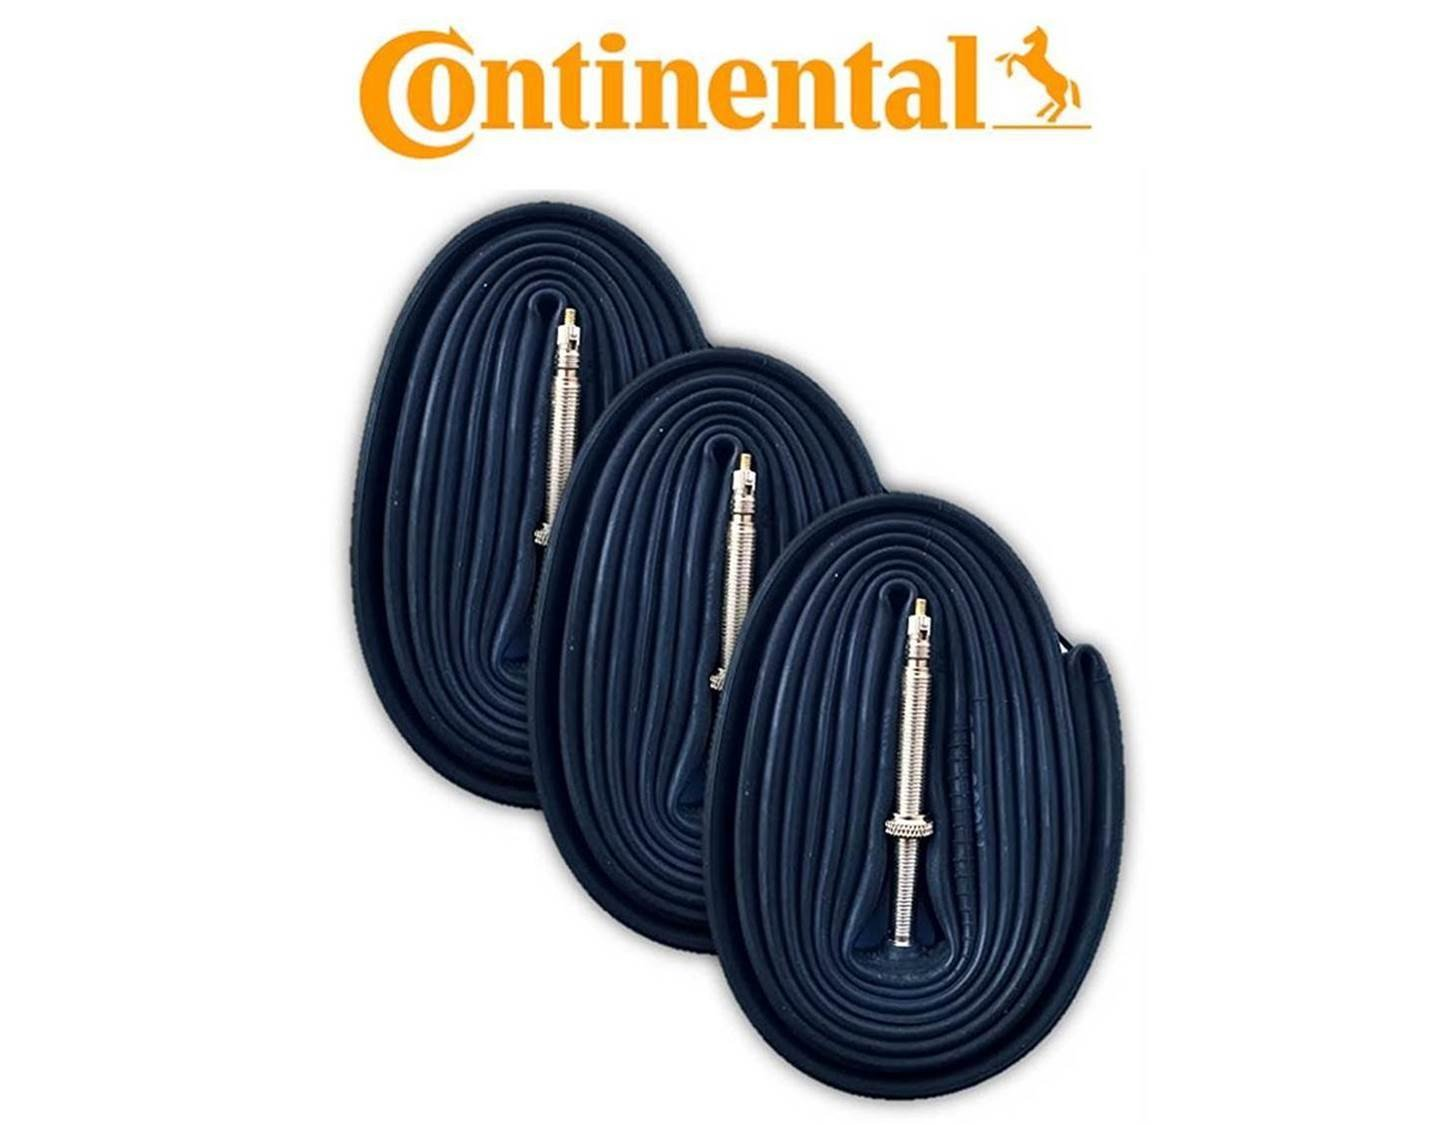 Continental Race 28 700 x 20-25c Tubes (Pack of 3) - Presta 60mm